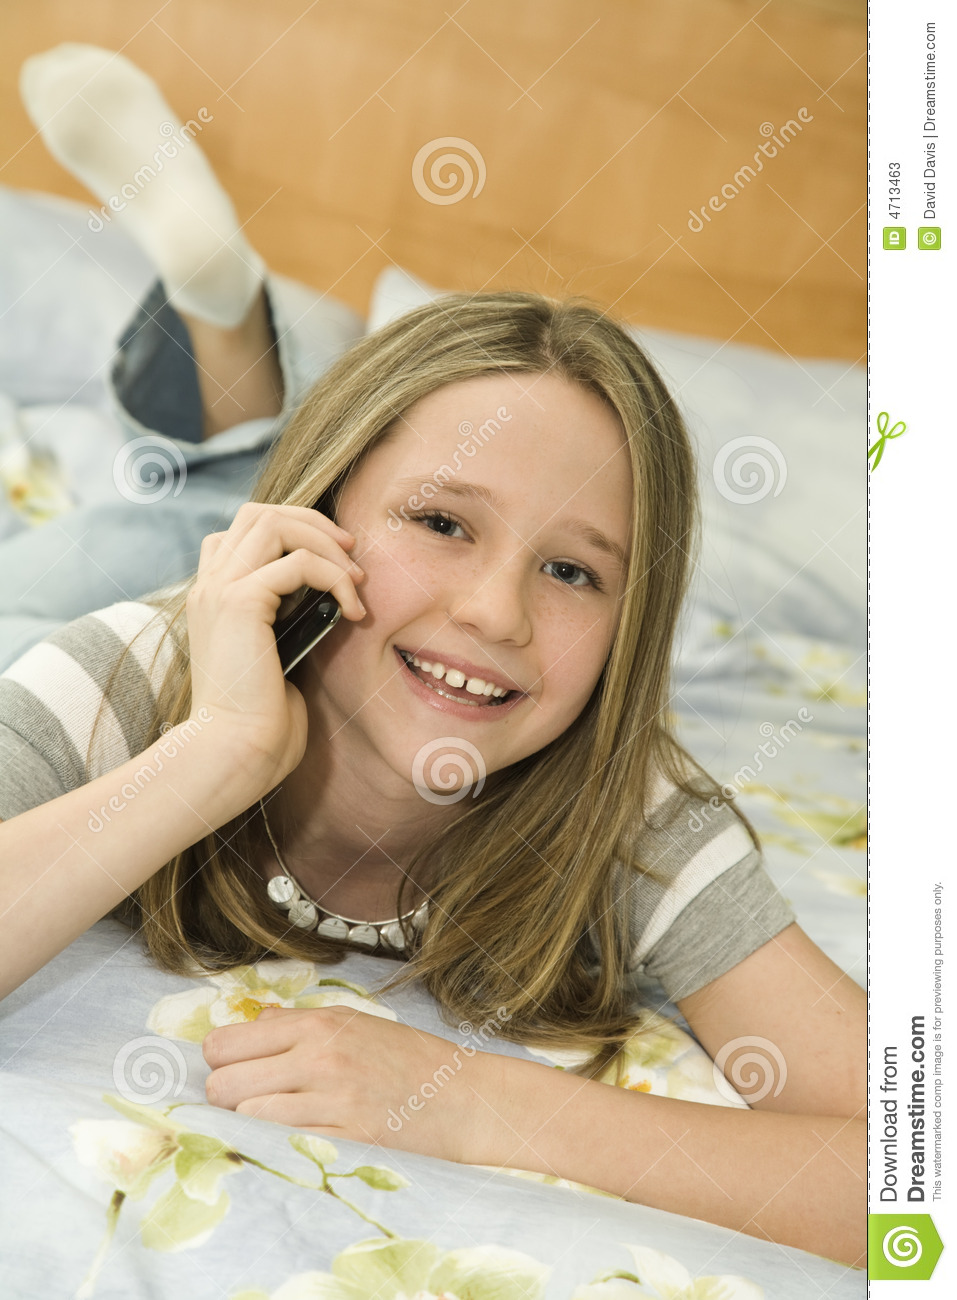 Caucasian preteen girl laying in bed talking on a cell phone.